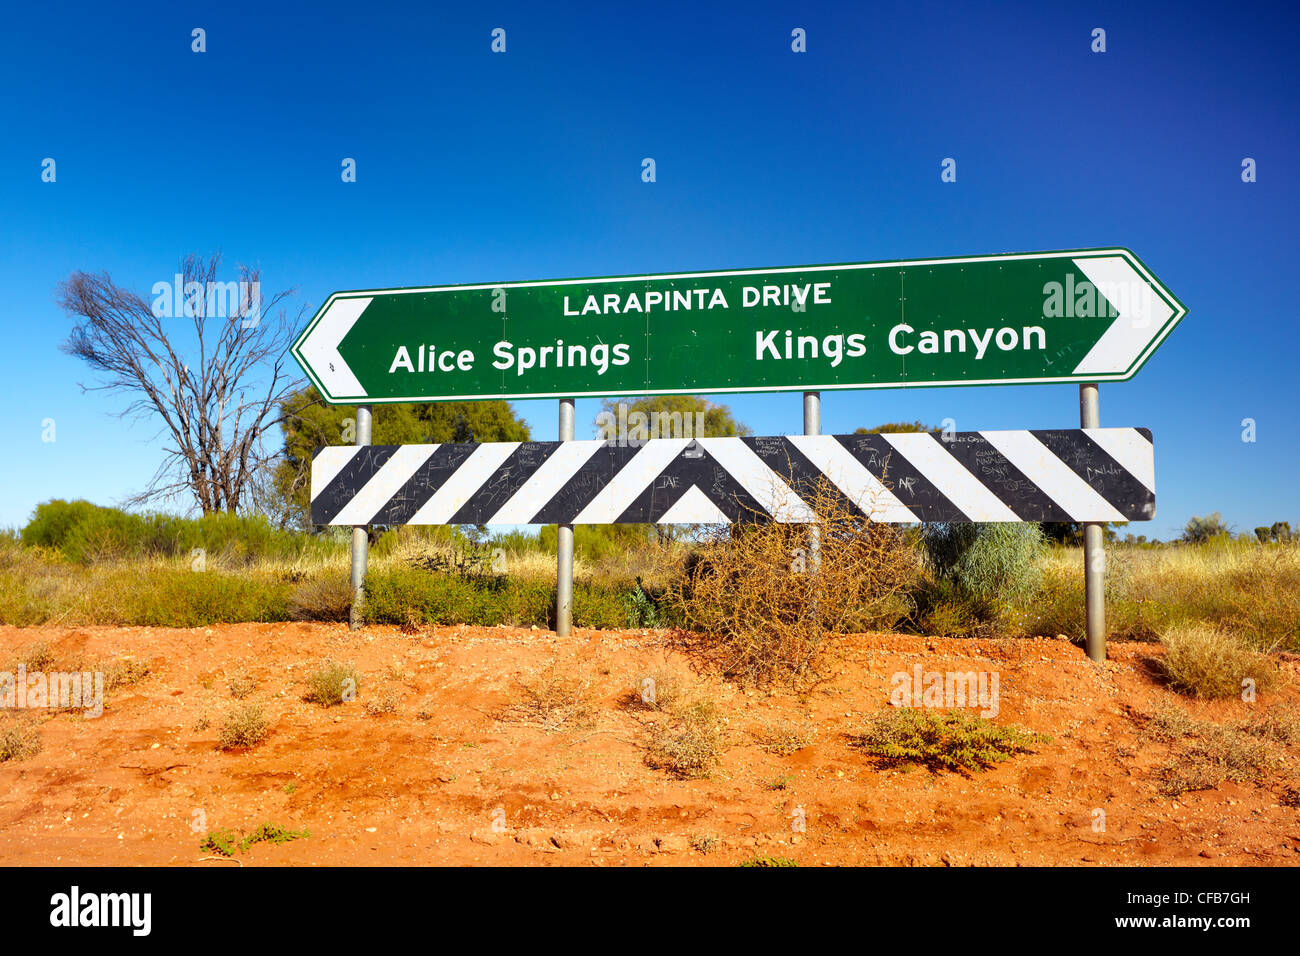 Larapinta Drive directional sign for Alice Springs and Kings Canyon, Australia - Stock Image